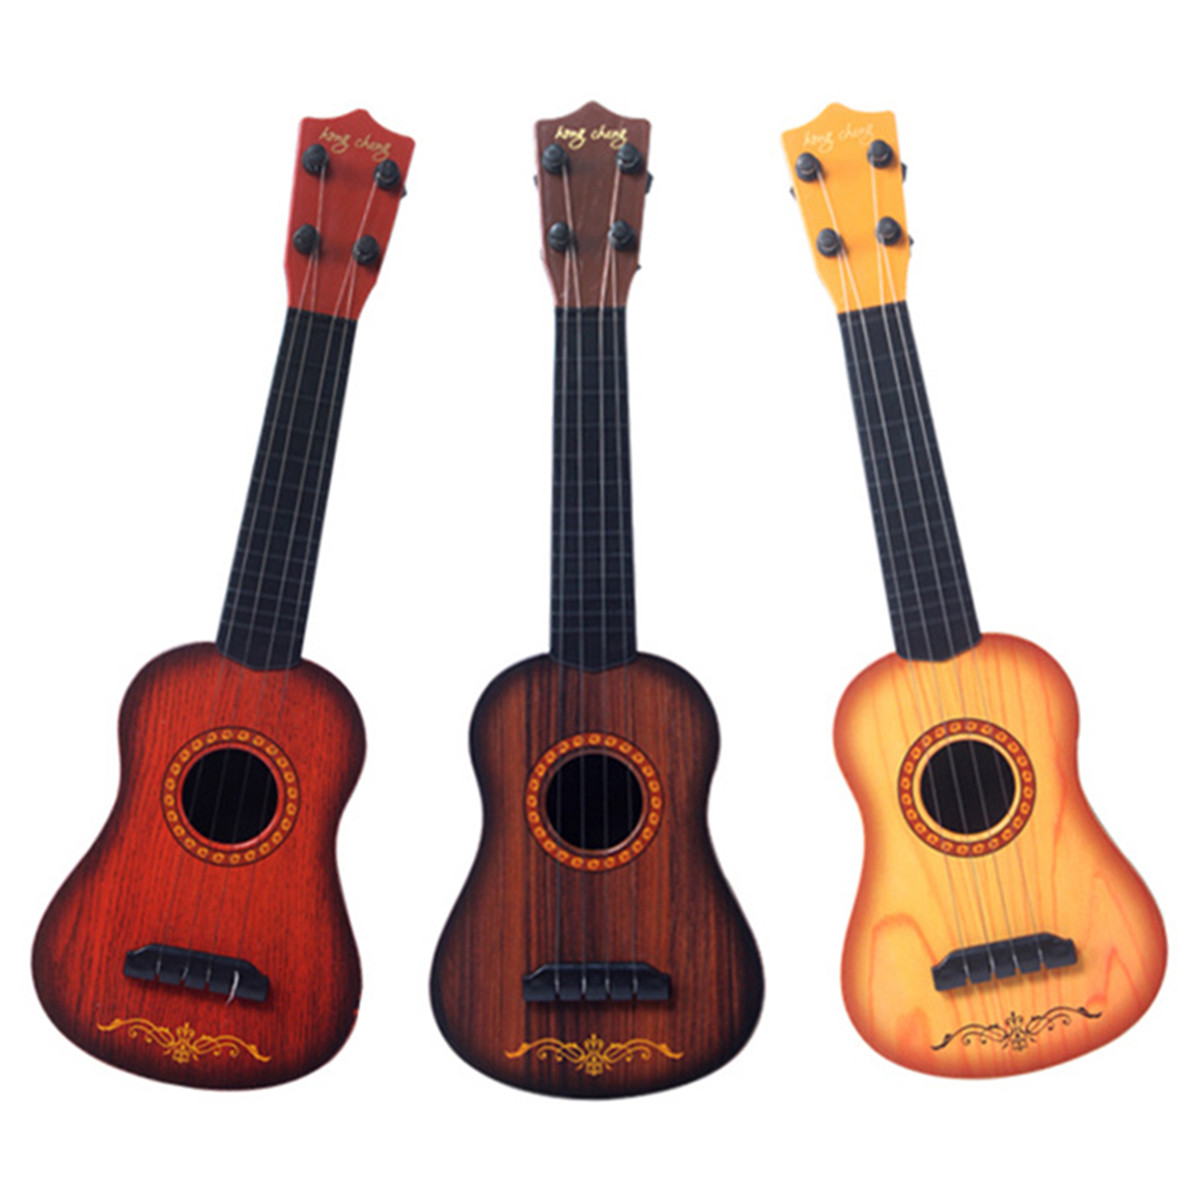 17 Inch Children Educational Plastic Ukulele Musical Guitar Four Strings Hawaiian Guitar Musical Instruments for Kids toy Gift